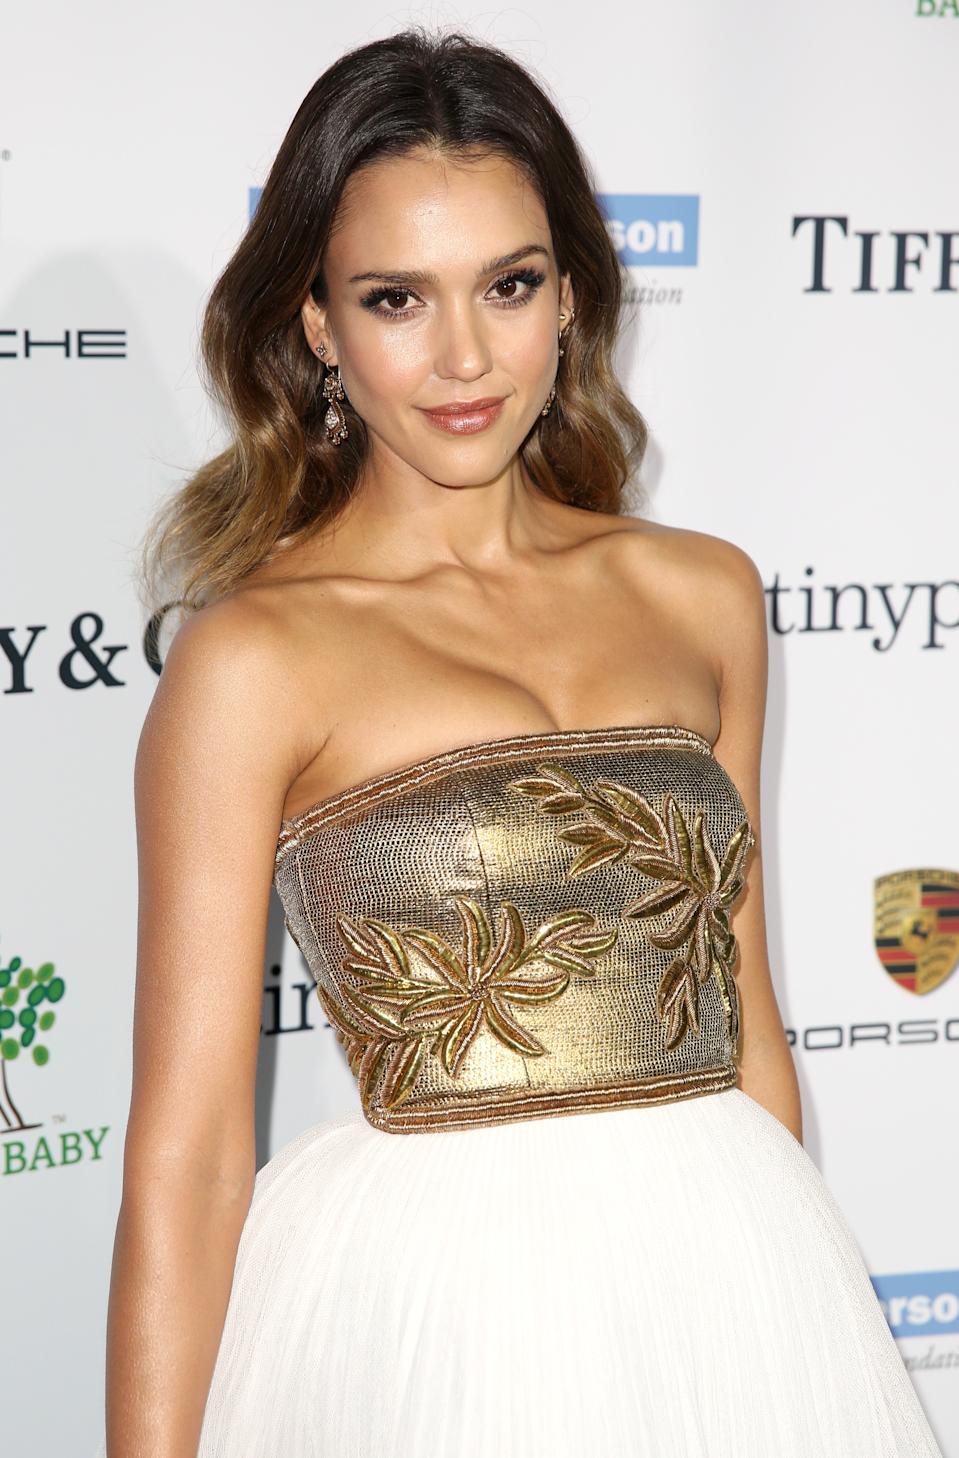 Jessica Alba arrives at the Third annual Baby2Baby Gala honoring Kate Hudson at The Book Bindery on Saturday, Nov. 8, 2014, in Culver City, Calif. (Photo by Matt Sayles/Invision/AP)